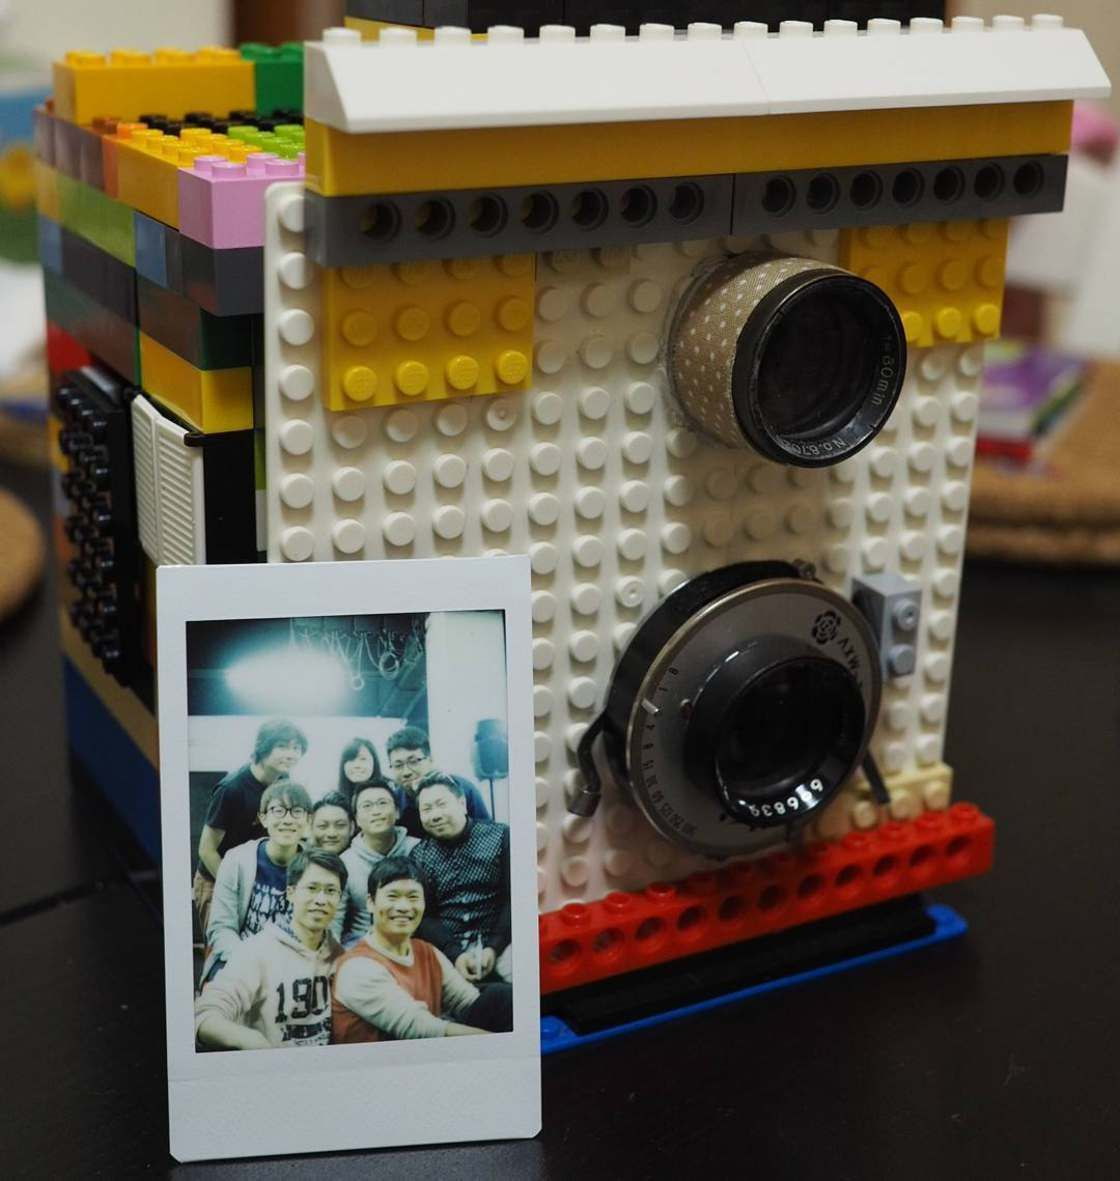 LEGO Instant Camera, a functional instant camera built entirely in LEGO! A funny concept created by Alberto, aka Instax Magic, a photographer based in Hong Kong and specialized in modification of instant cameras.